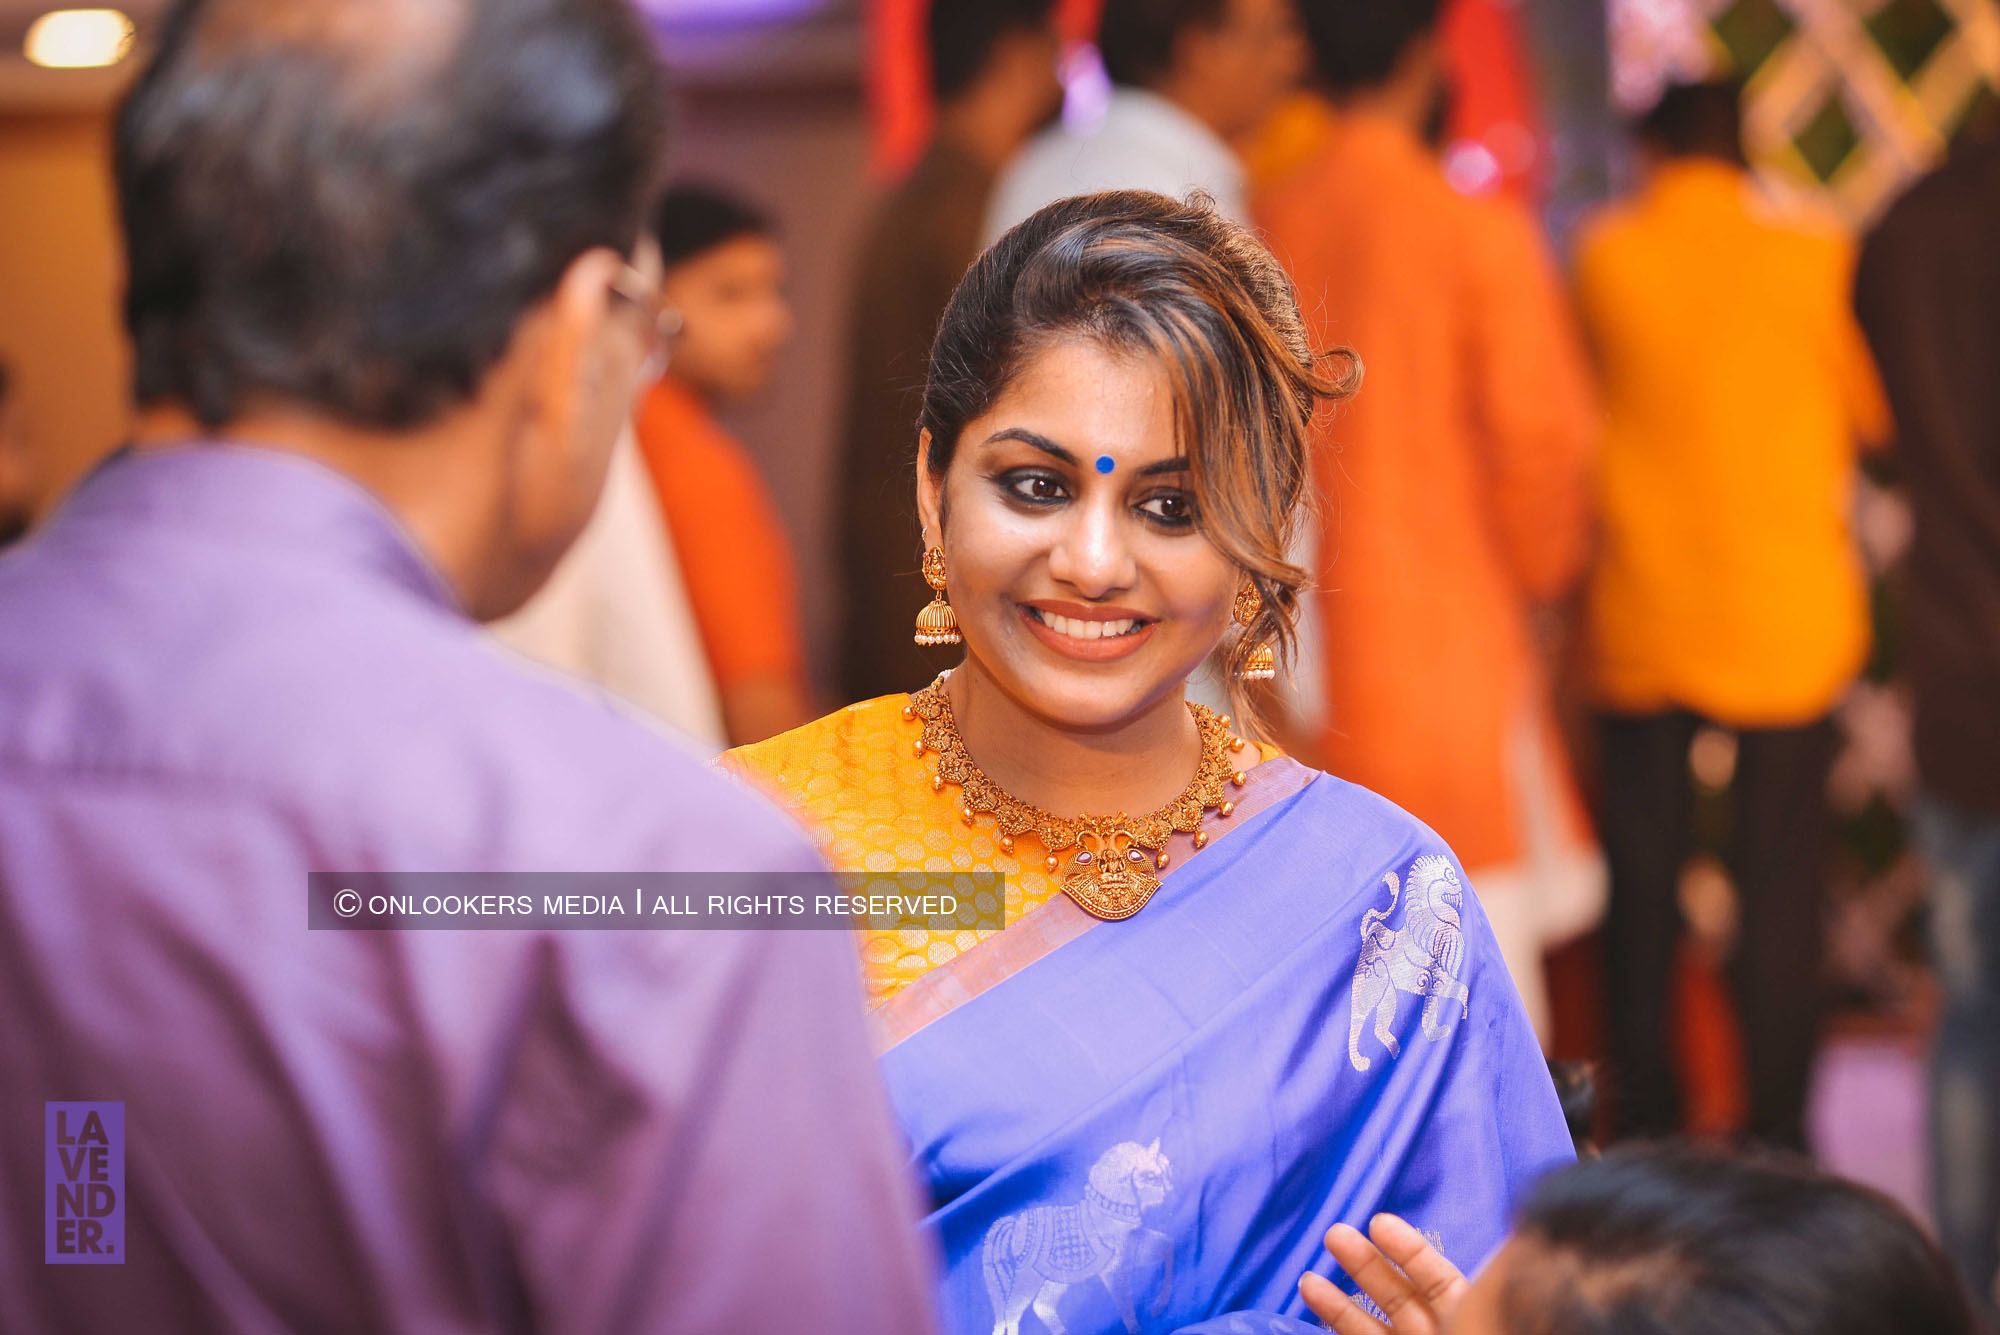 http://onlookersmedia.in/wp-content/uploads/2018/05/sreejith-vijay-wedding-stills-images-76.jpg